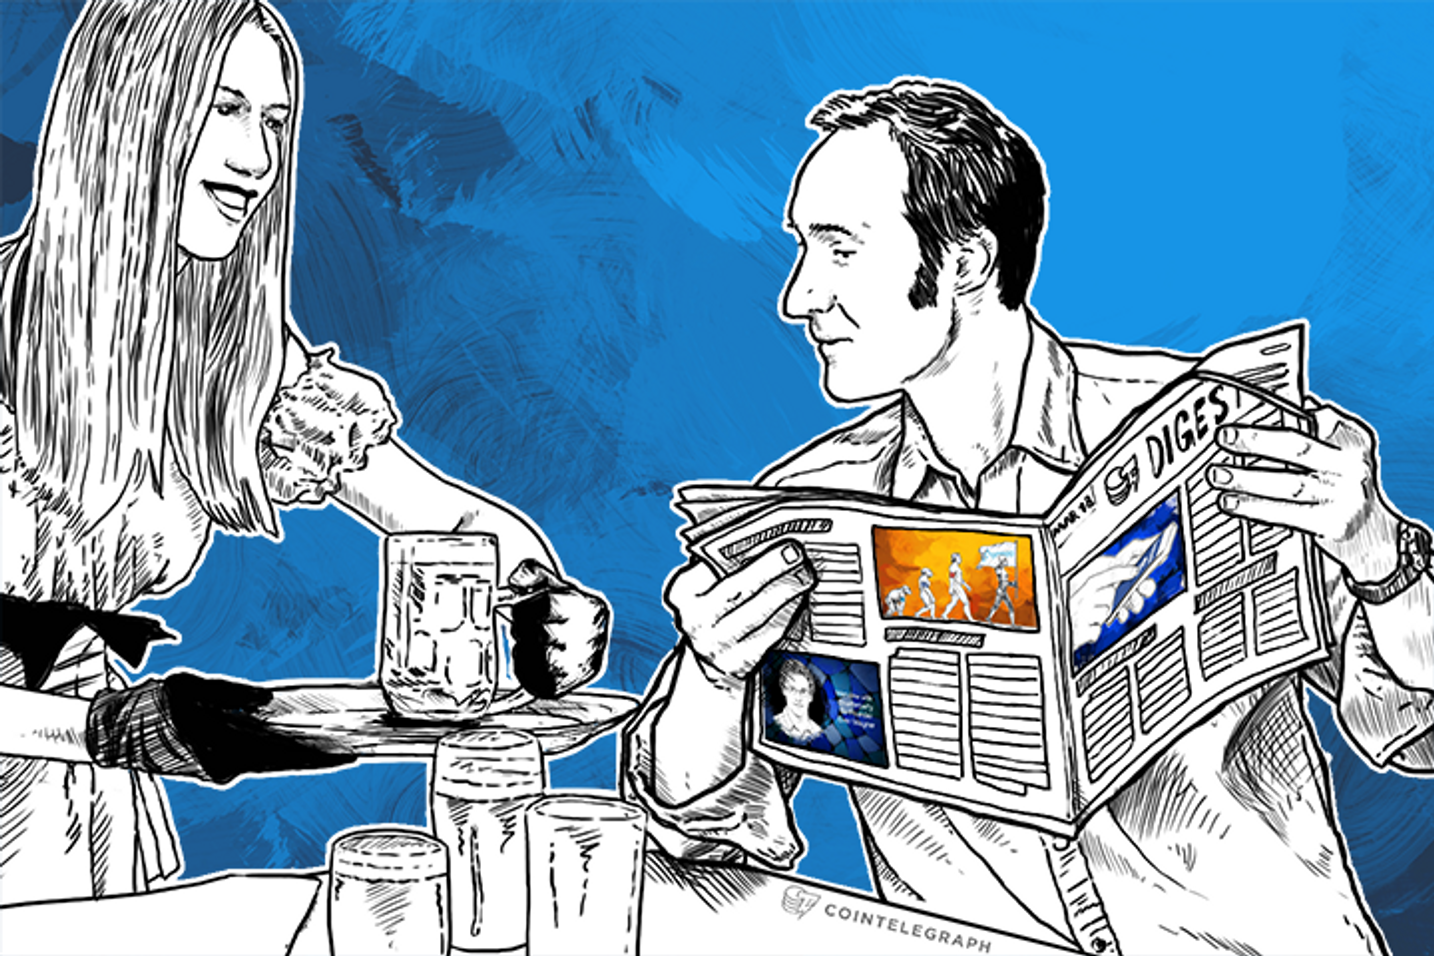 MAR 18 DIGEST: Facebook Launches P2P Payments, Coinapult Hacked, and More